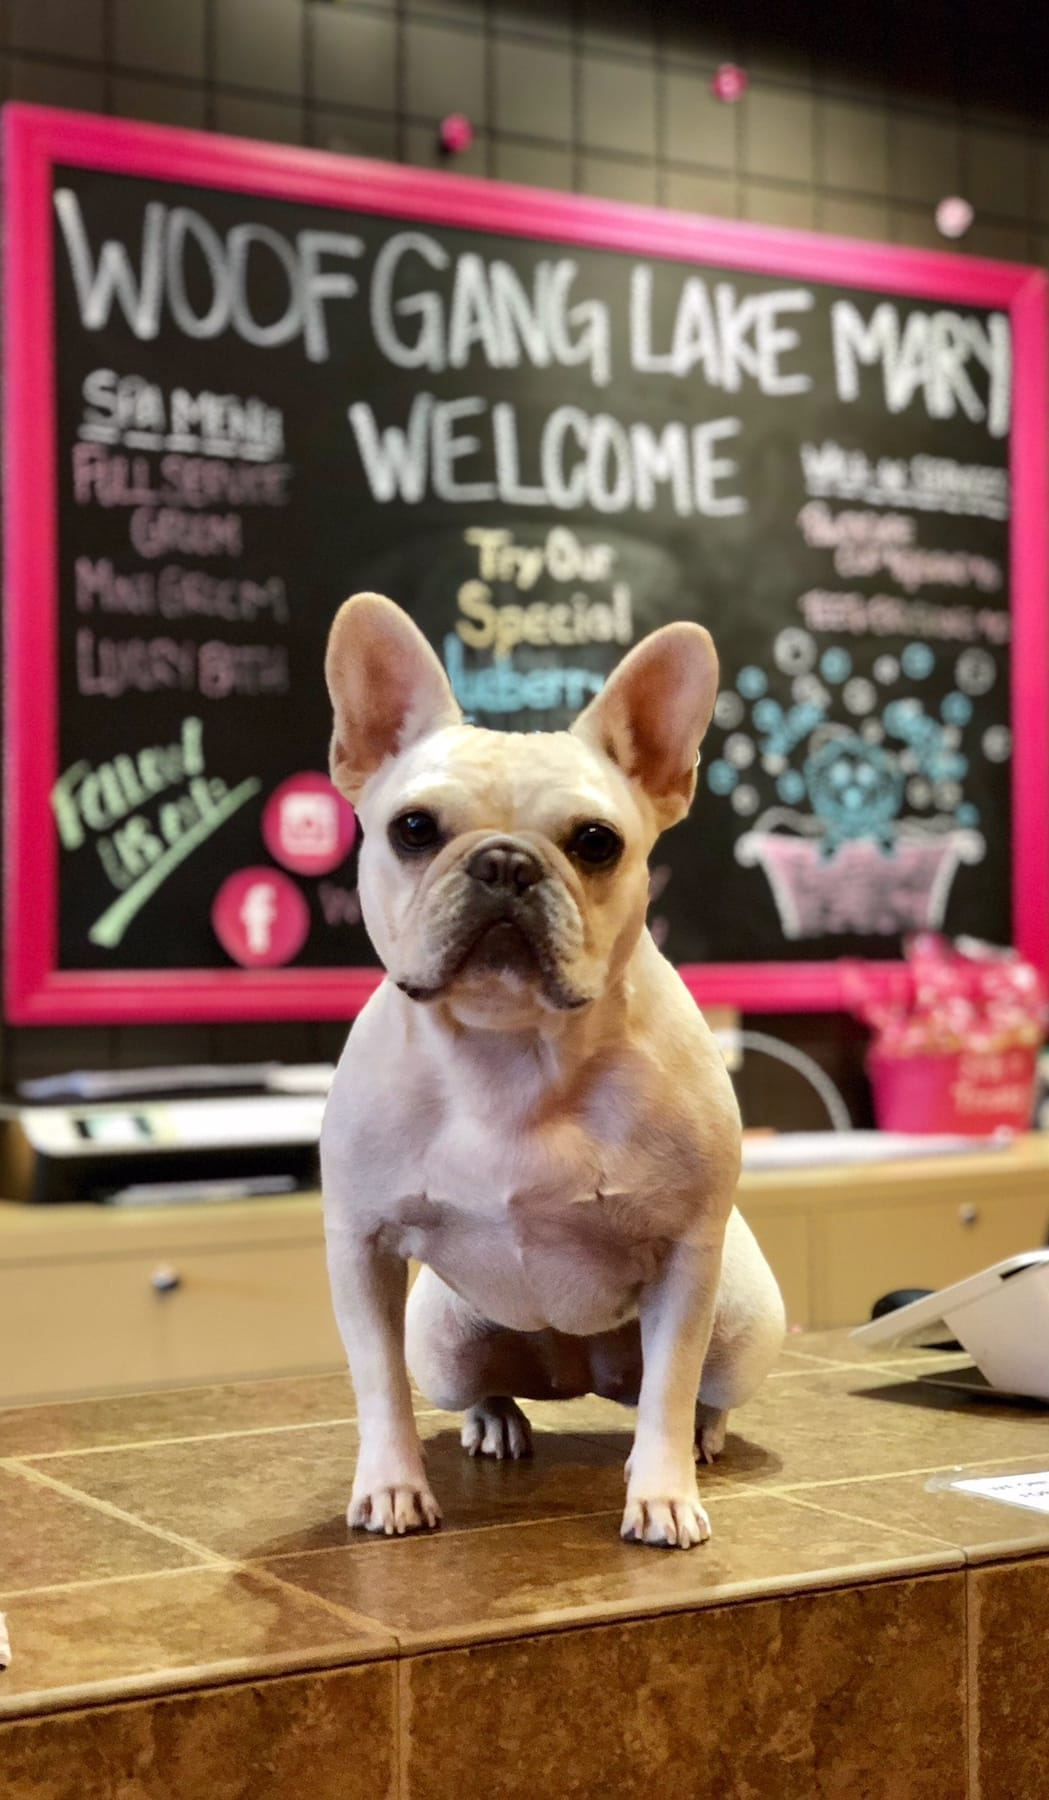 Mobile version of dog on counter at Woof Gang Bakery store